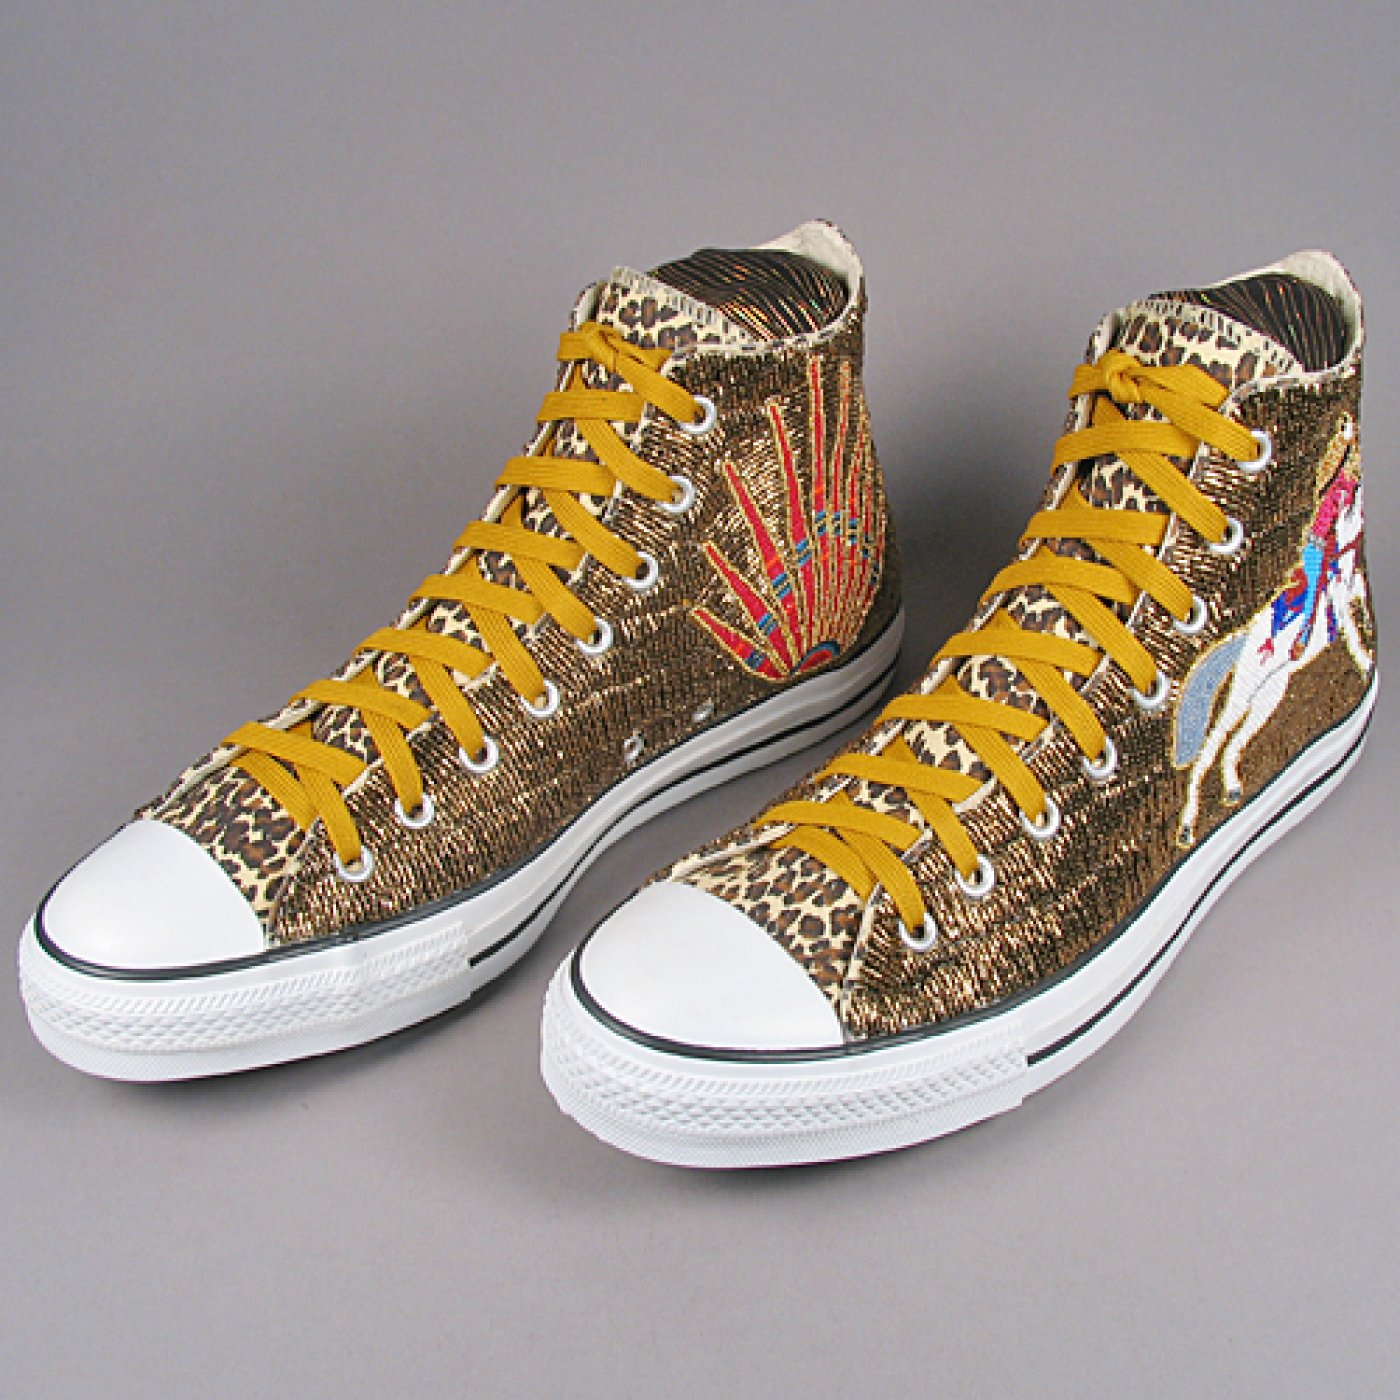 ccce070ffcd1 Fully Beaded High Top Converse Shoes